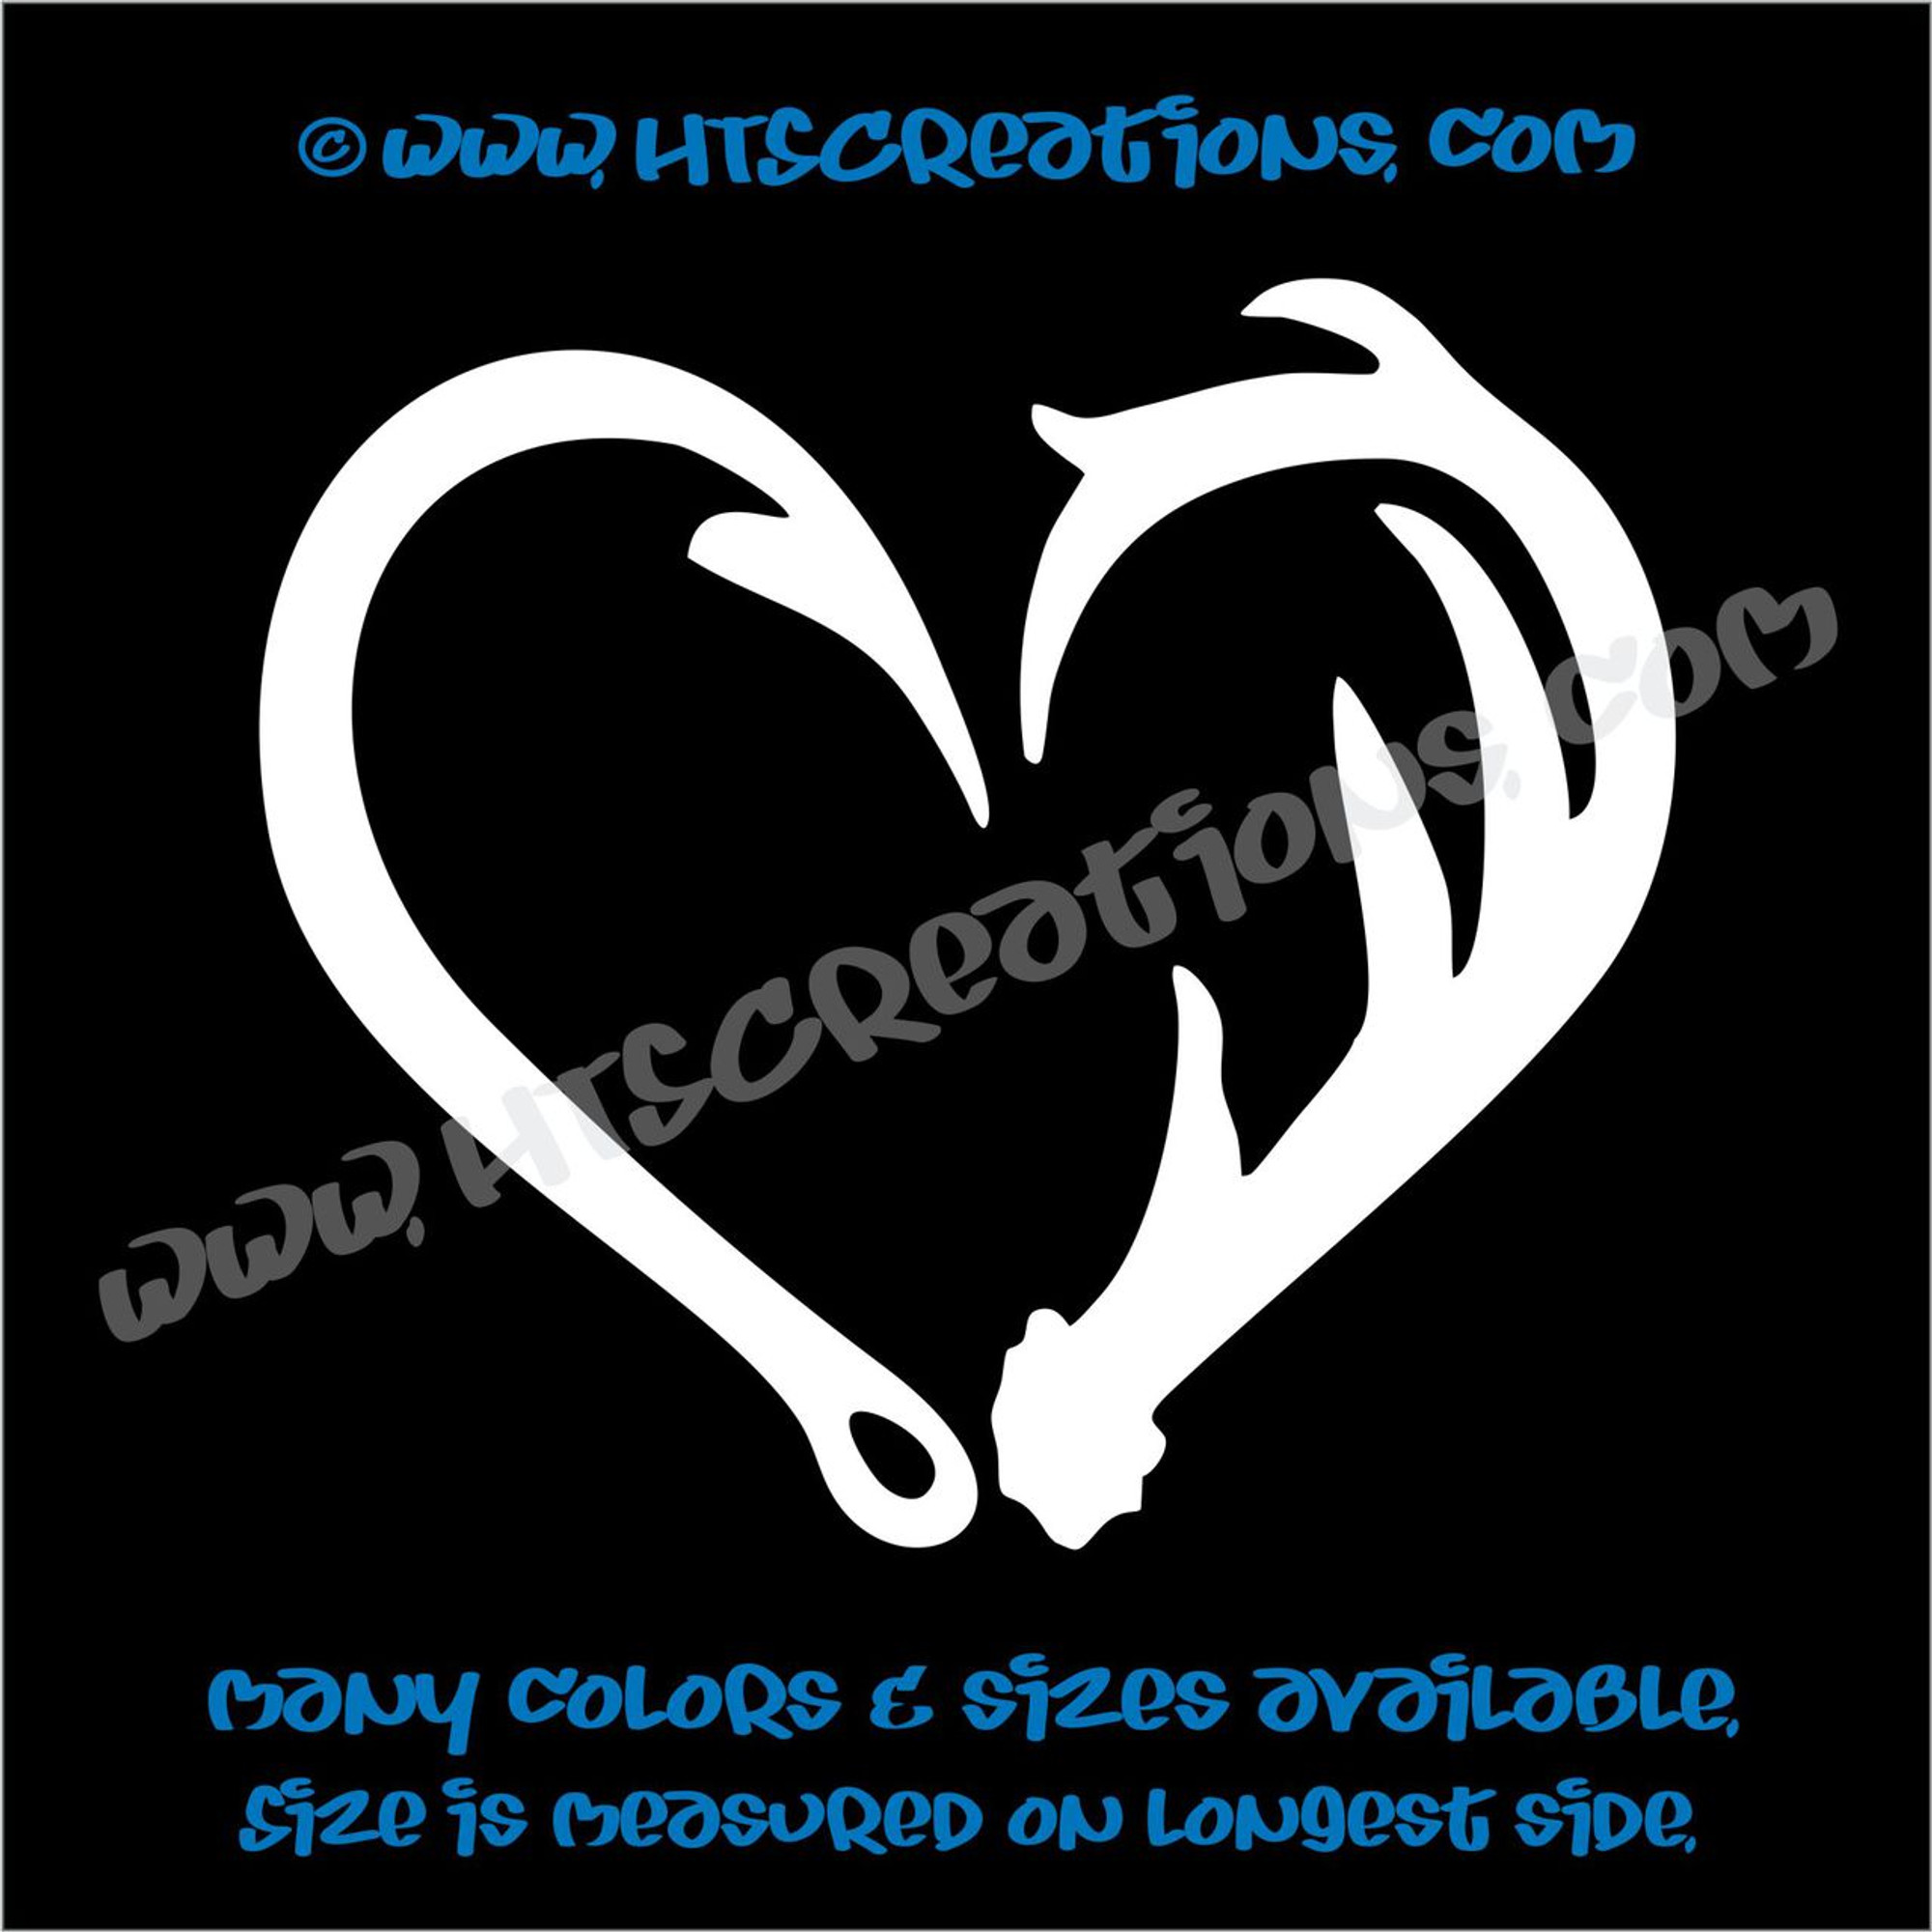 I HEART 2 KNIT Vinyl Decal for Car or Home